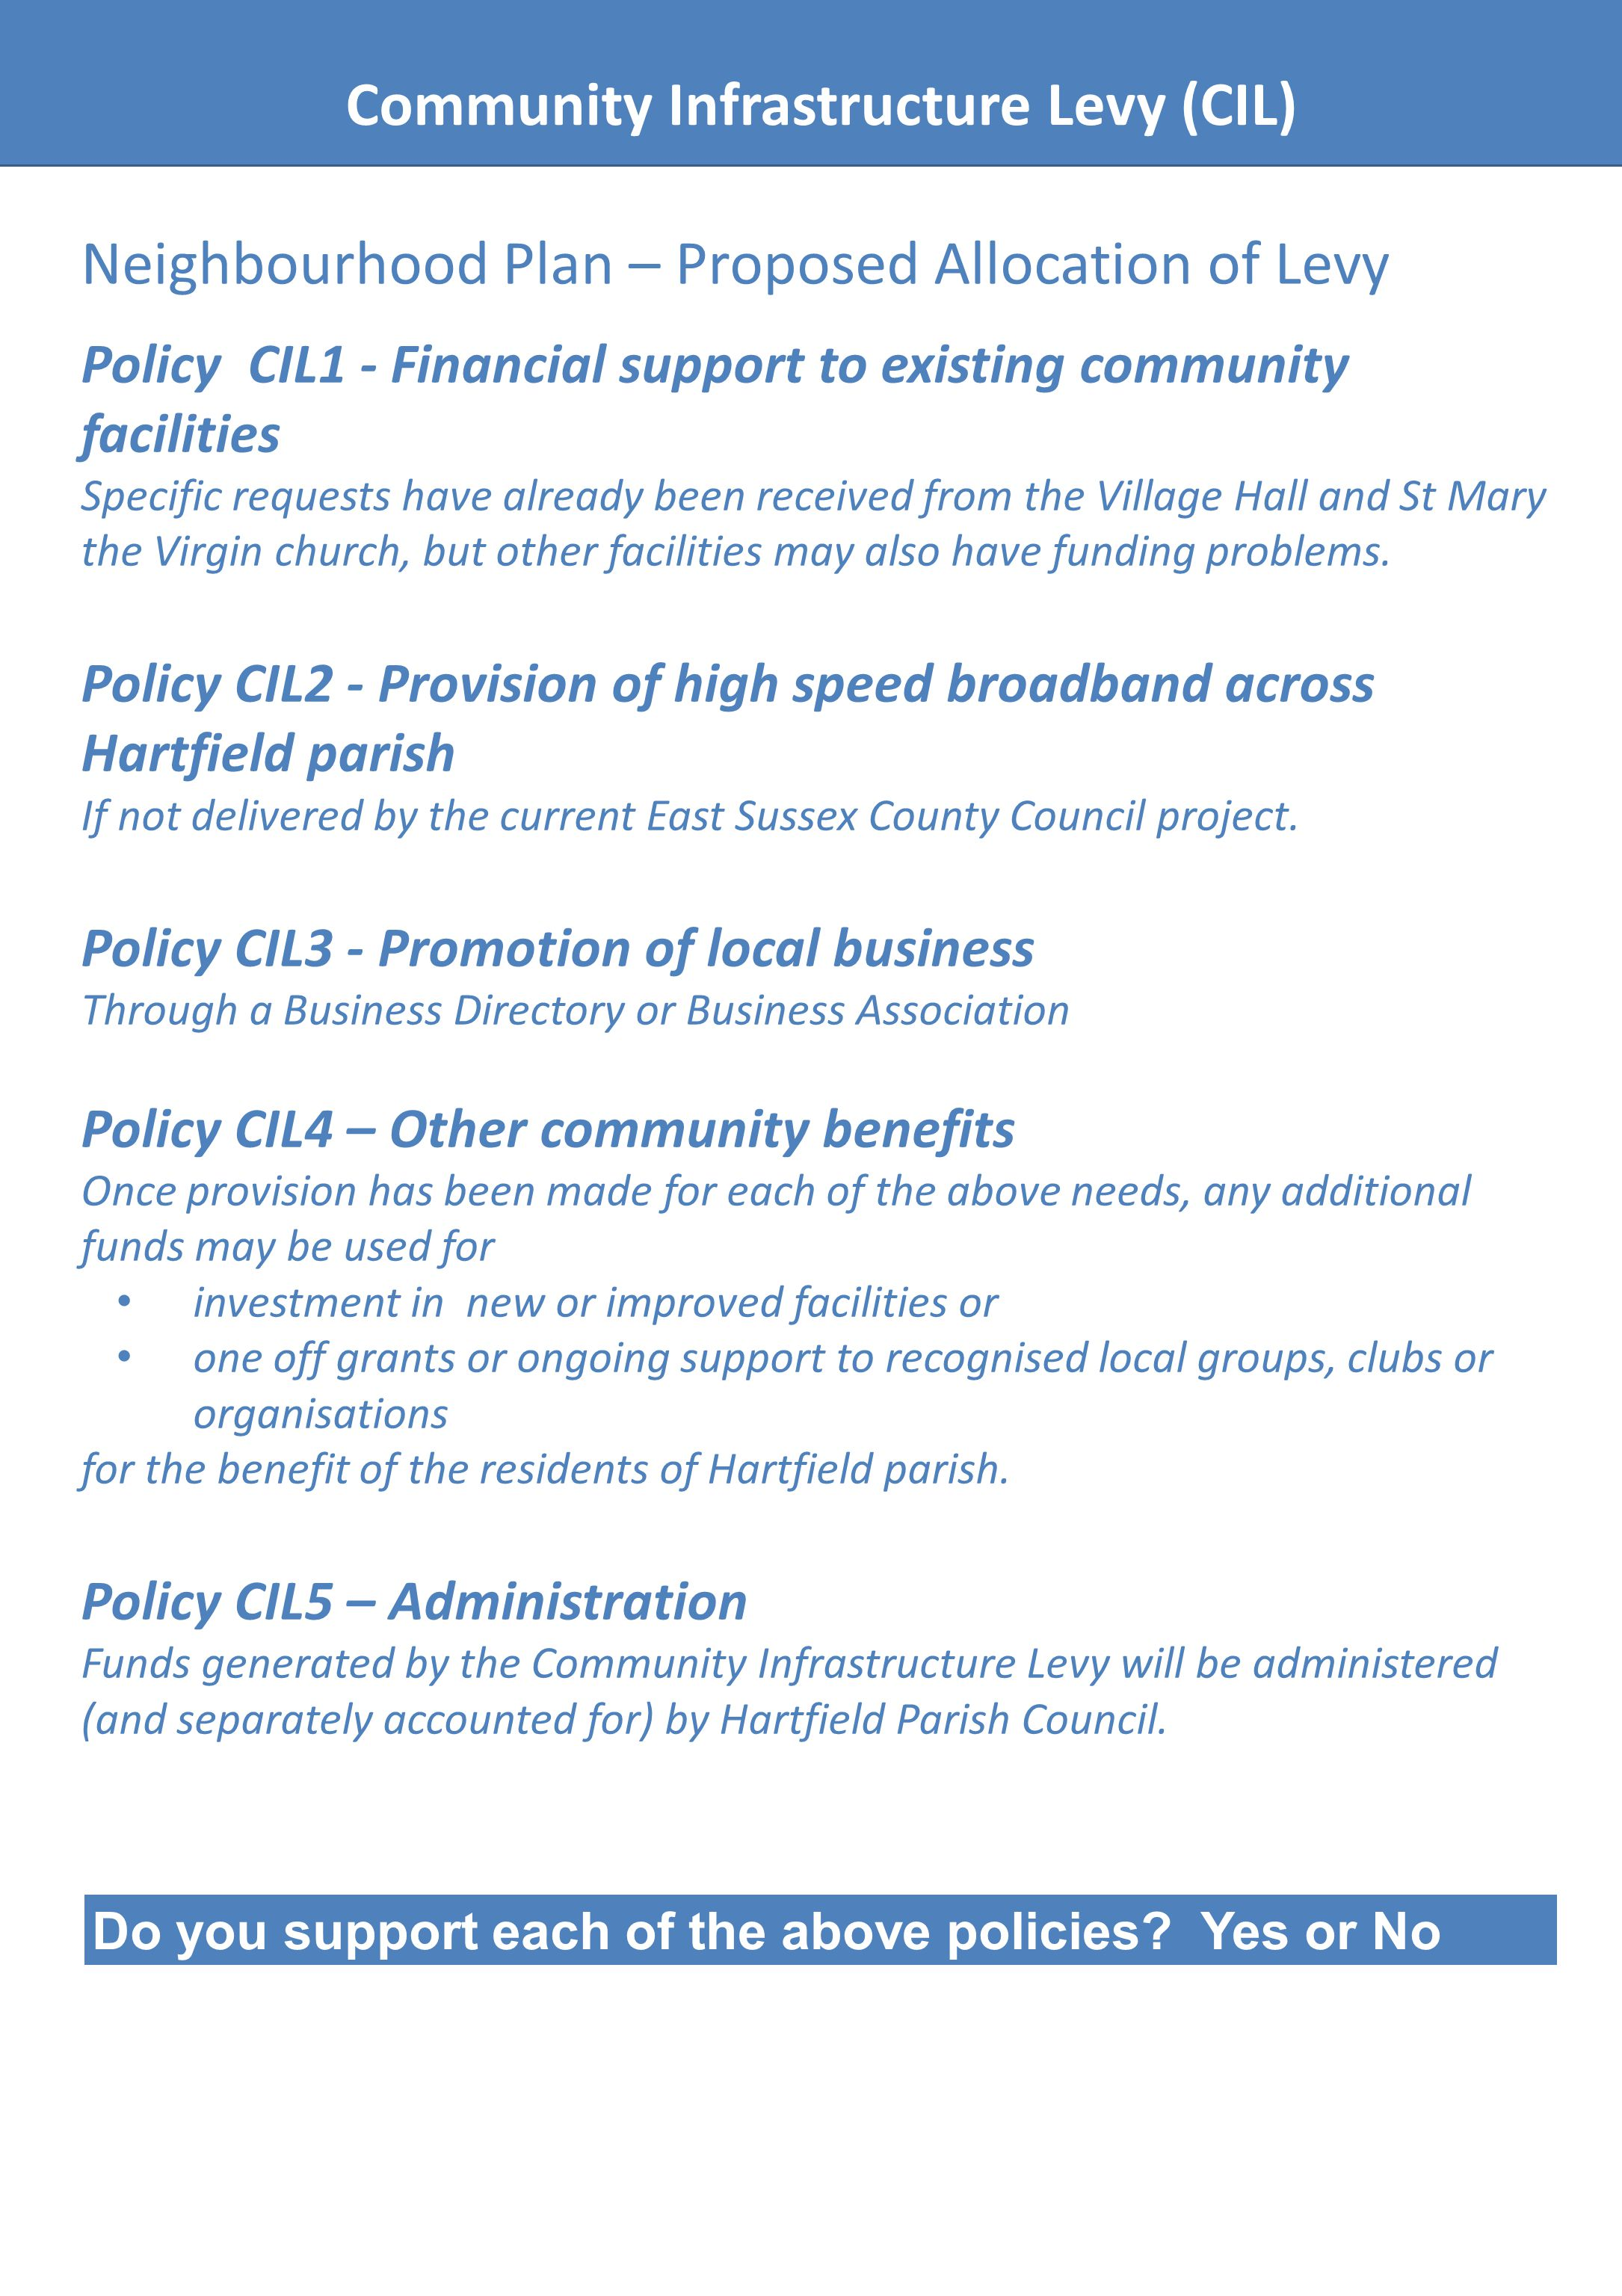 Community Infrastructure Levy (CIL) Neighbourhood Plan – Proposed Allocation of Levy Policy CIL1 - Financial support to existing community facilities Specific requests have already been received from the Village Hall and St Mary the Virgin church, but other facilities may also have funding problems.